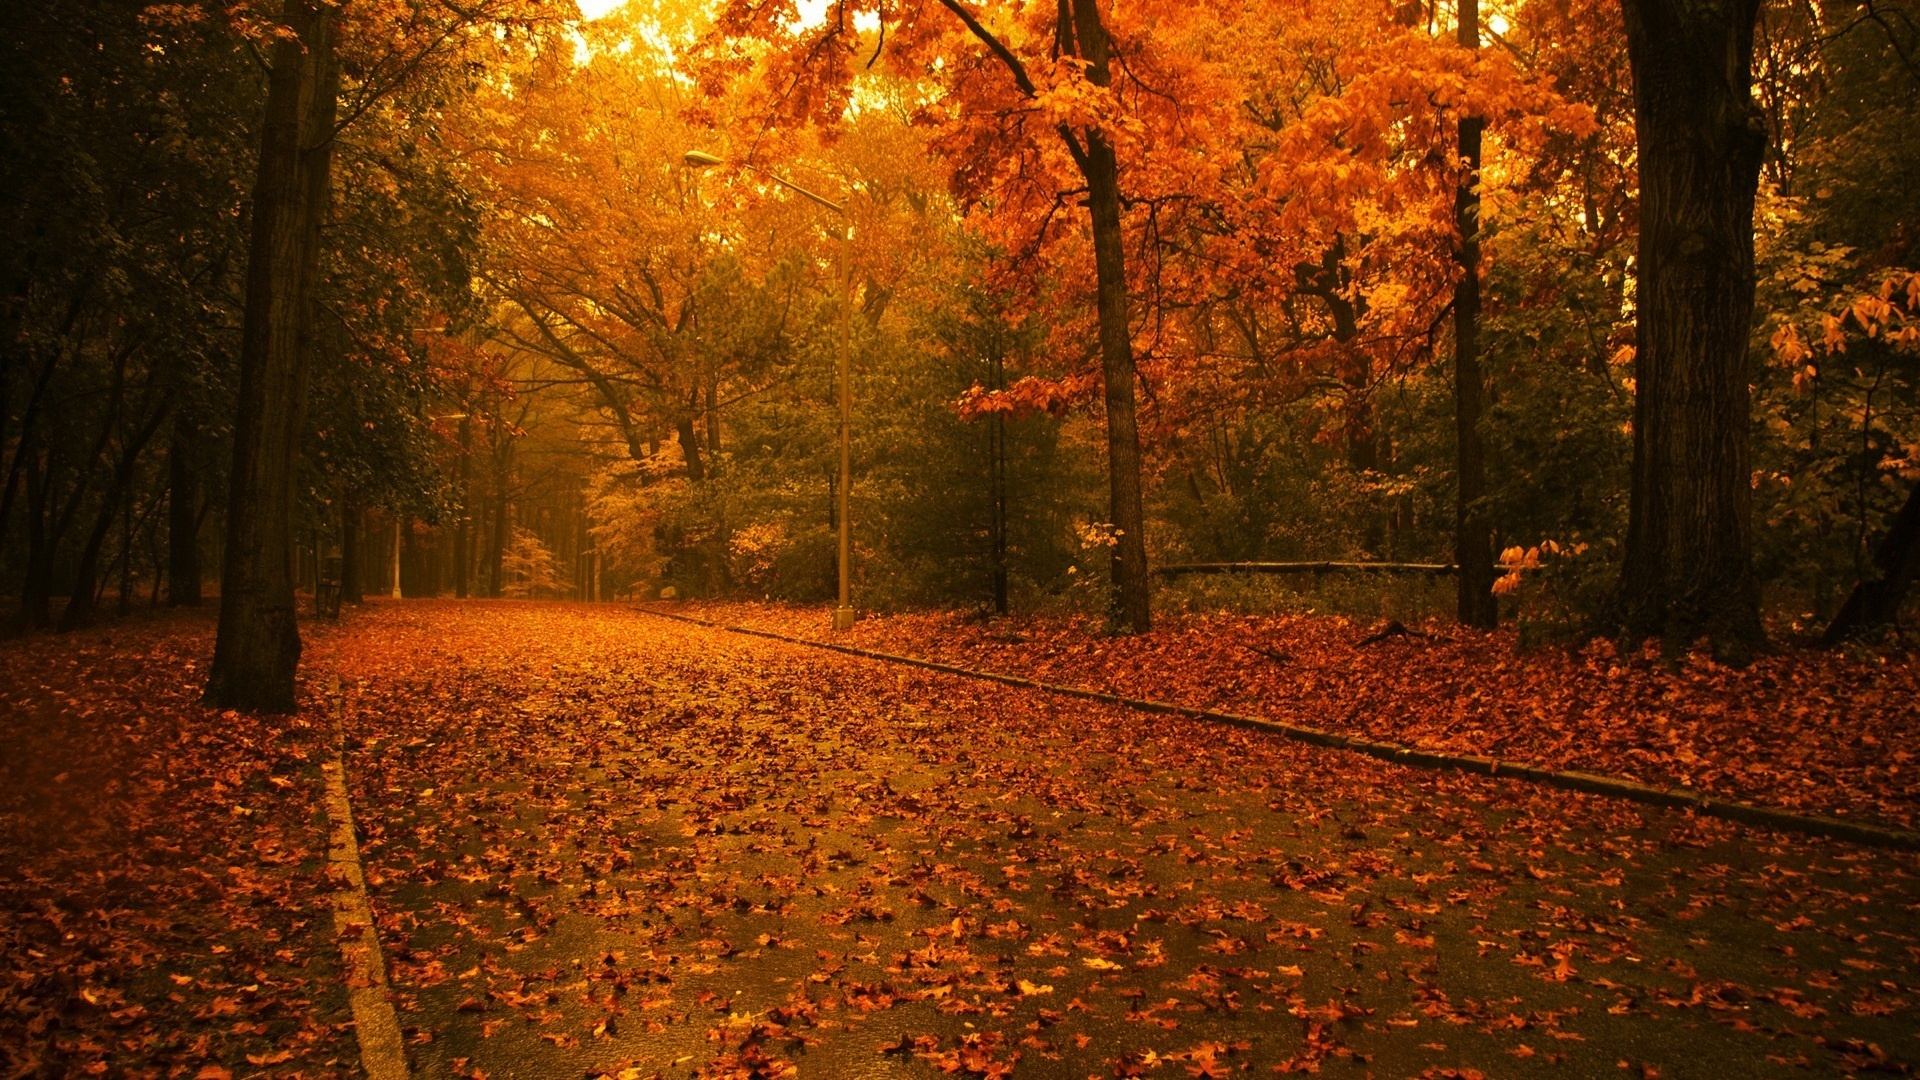 Trees in autumn nature 39 s seasons wallpaper 22174158 - Seasons wallpaper backgrounds ...